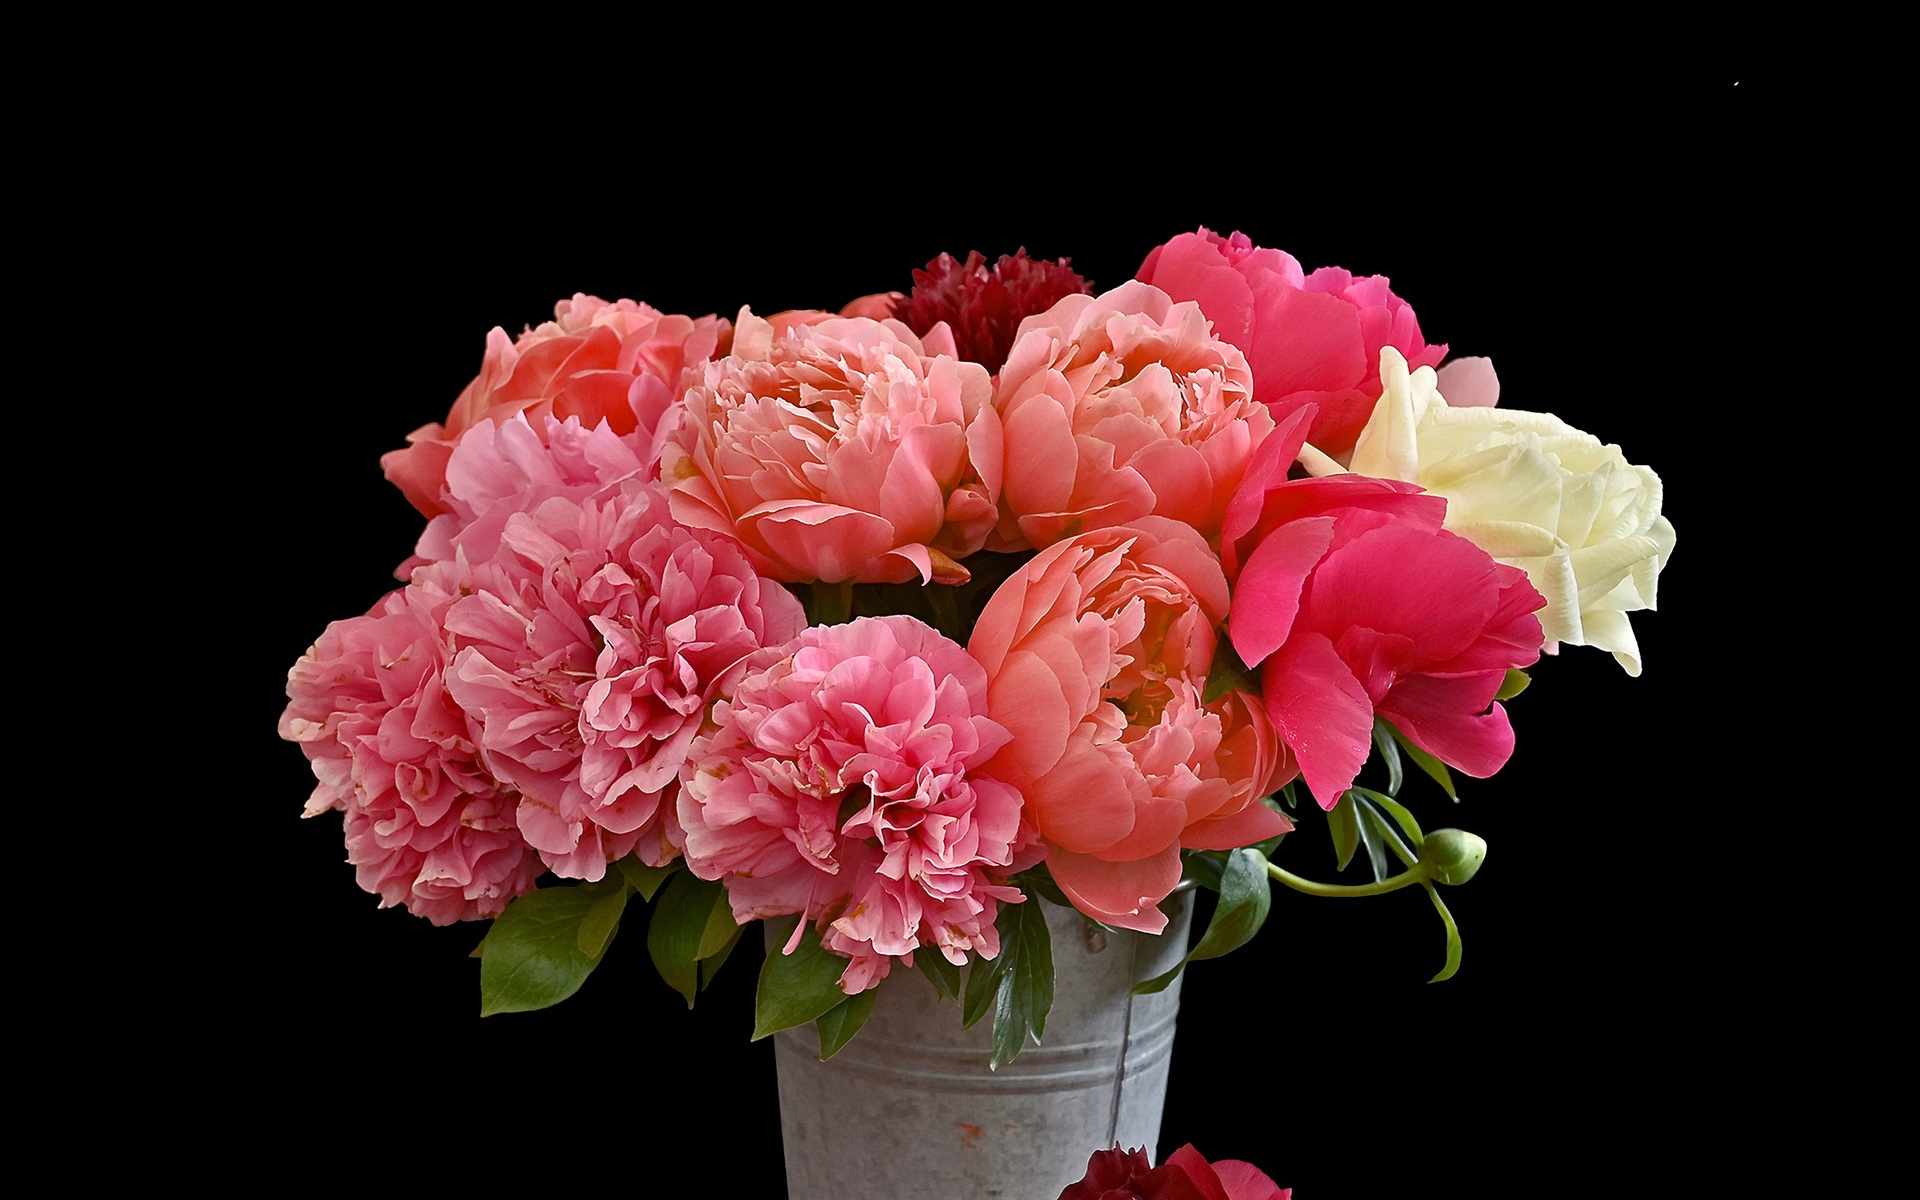 wallpaper bouquet flowers, pink peonies, bucket, black background